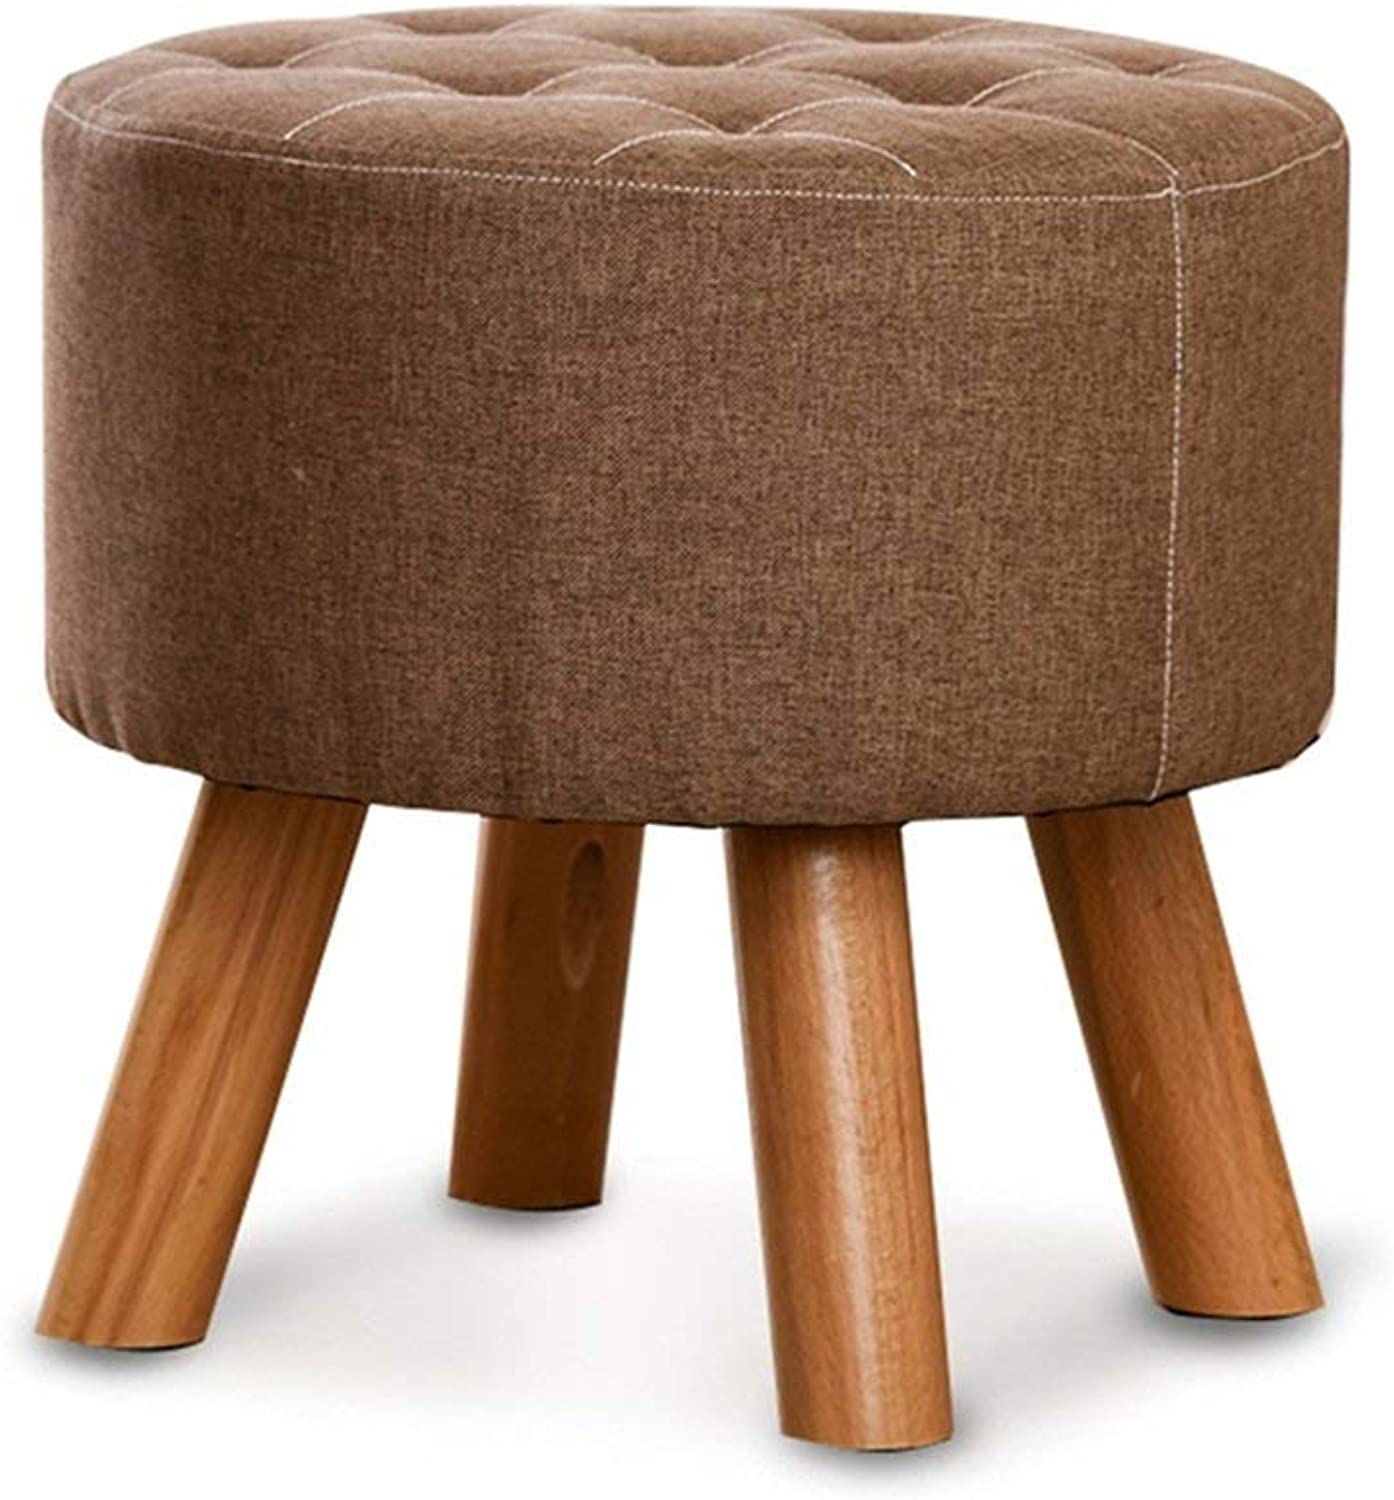 ChenDz Cute Stool Change shoes Stool Fashion Stool Solid Wood Stool Creative wear shoes Stool Fabric Sofa Bench Bench Stool Brown